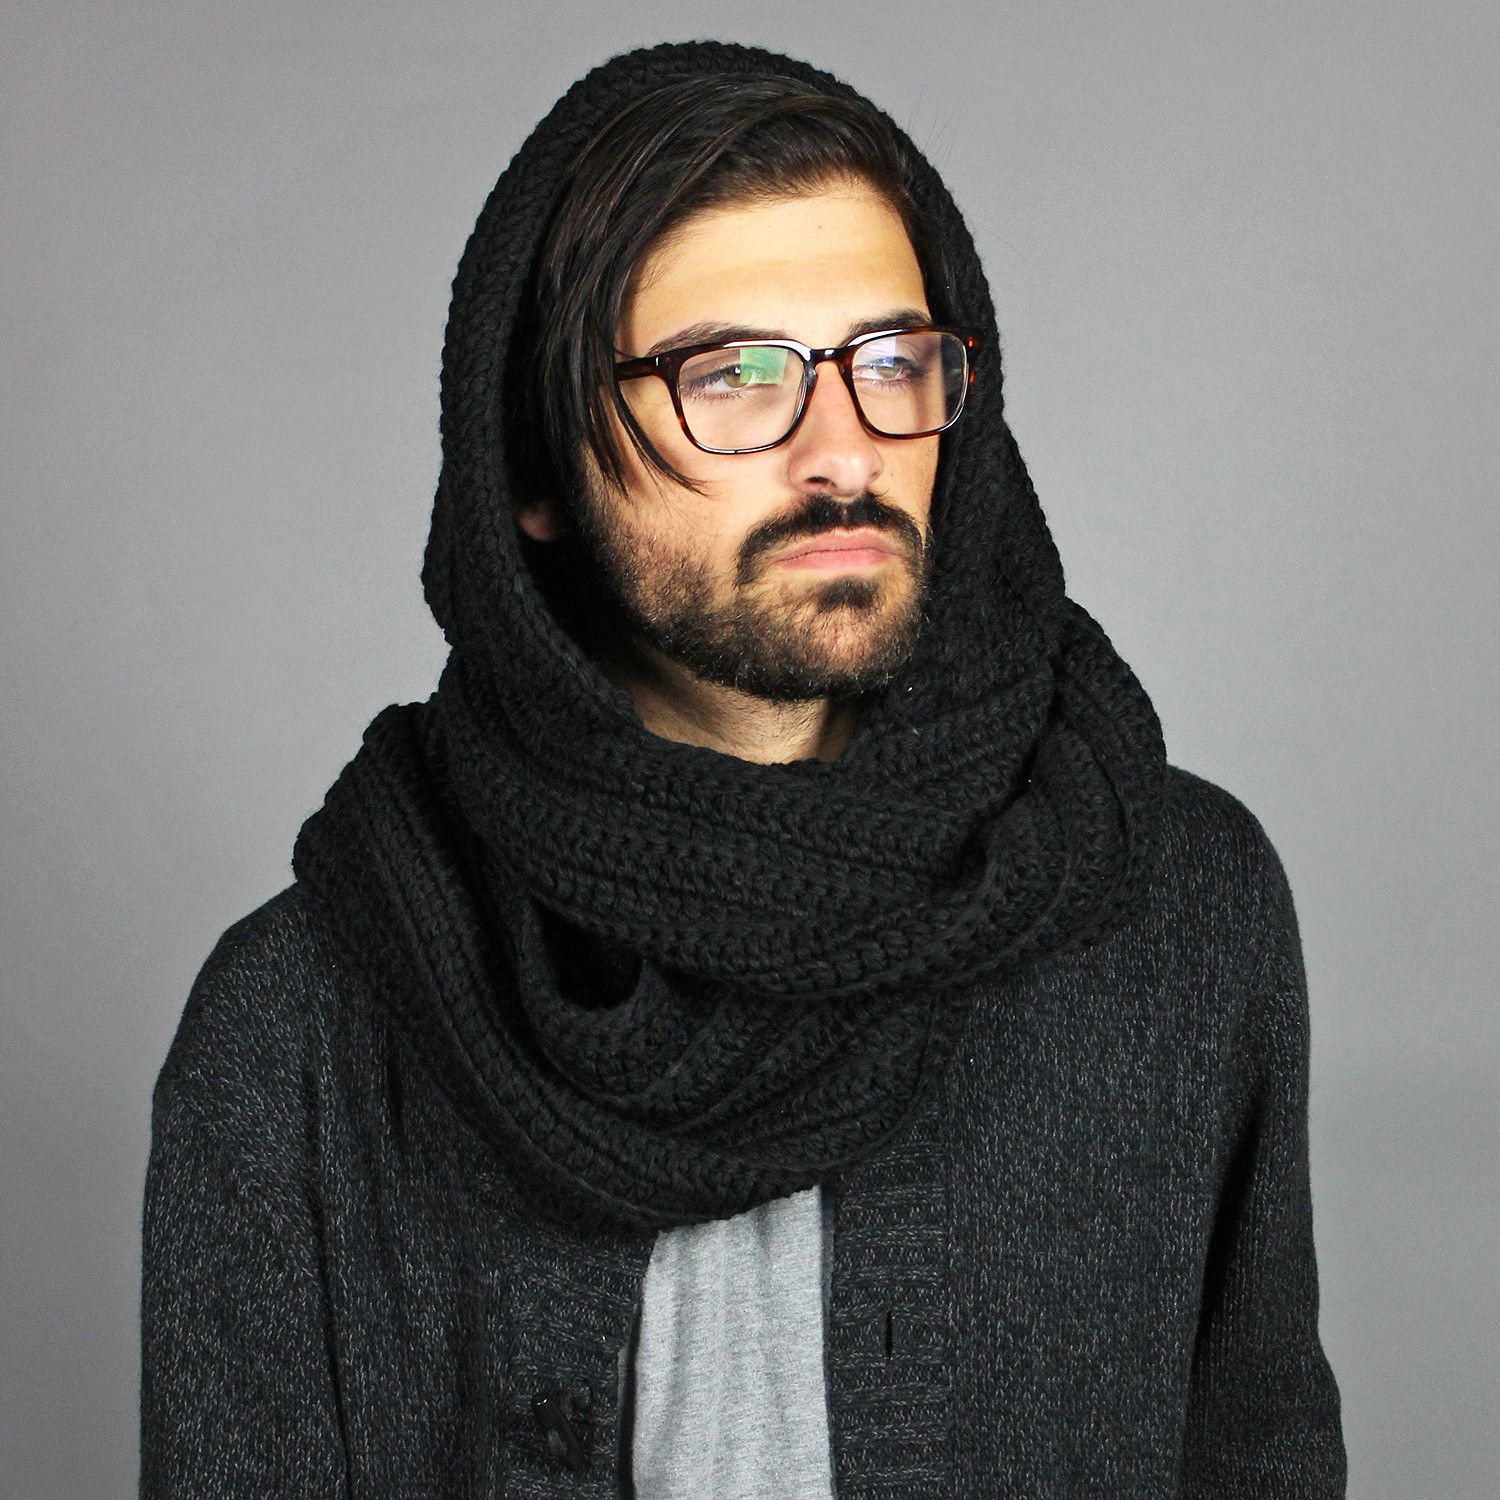 mens scarf - Google Search | Scarves | Pinterest | Hooded ...